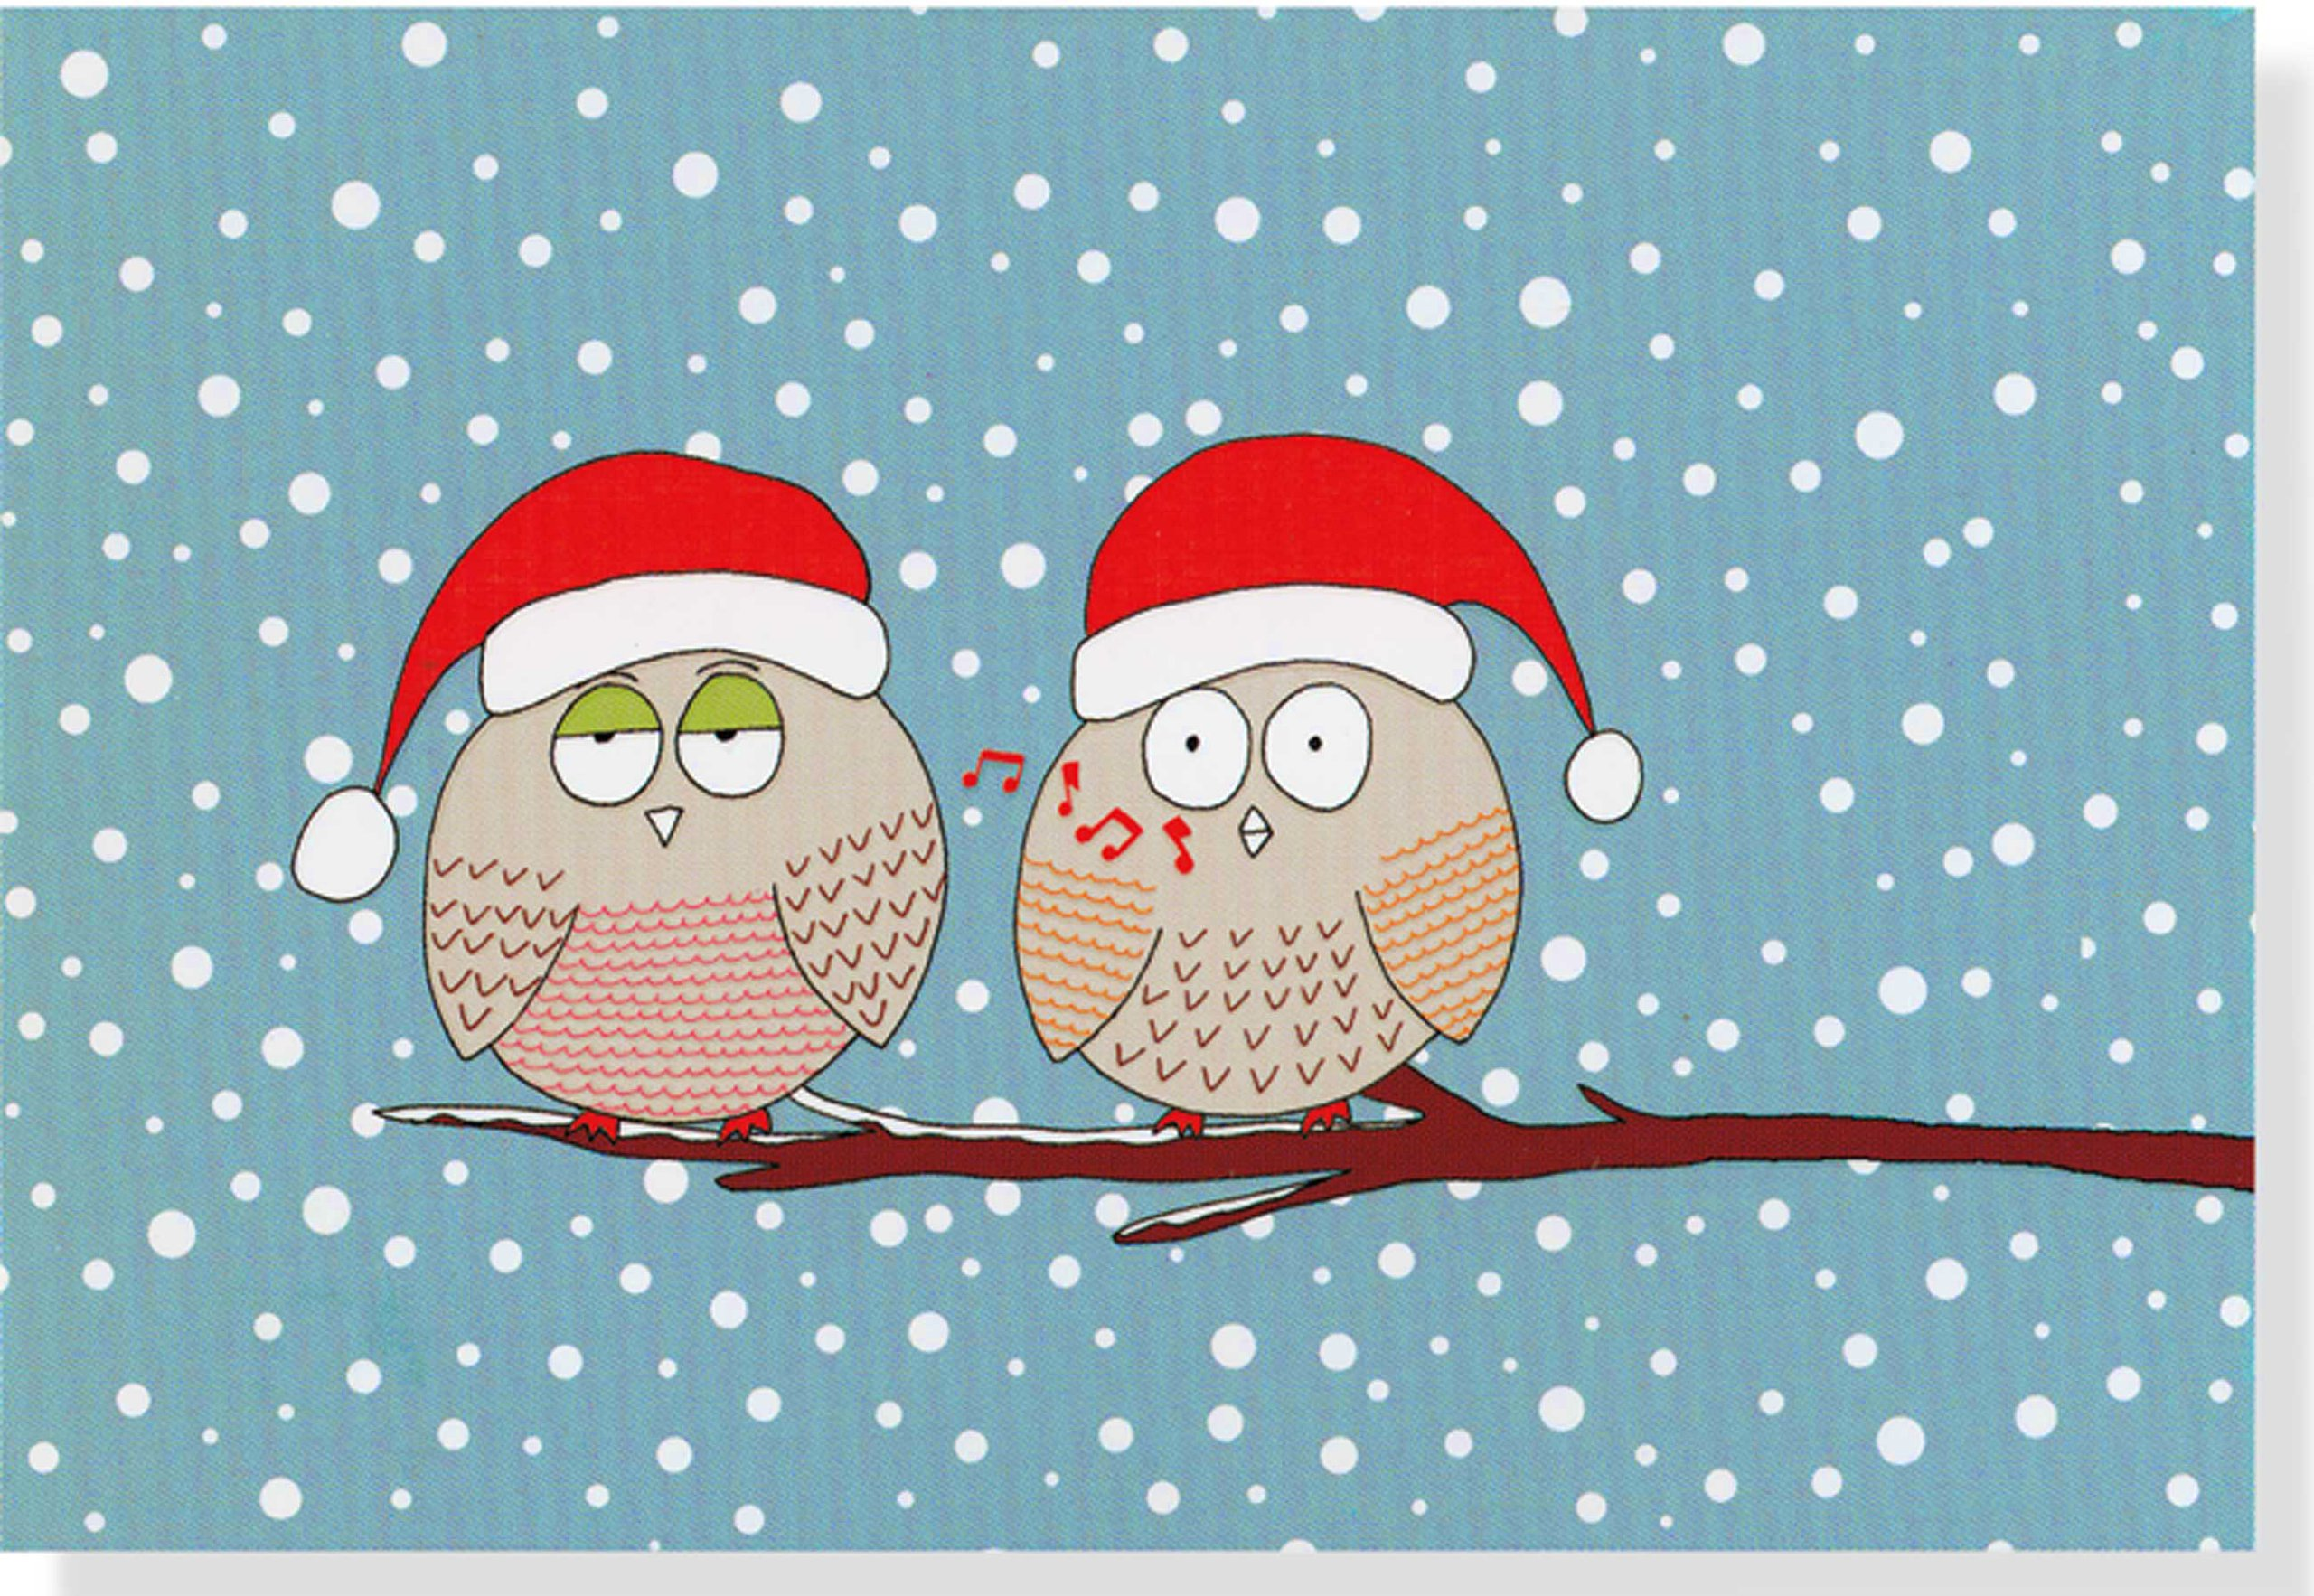 whistling owls small boxed holiday cards christmas cards holiday cards greeting cards peter pauper press inc 9781441311832 amazoncom books